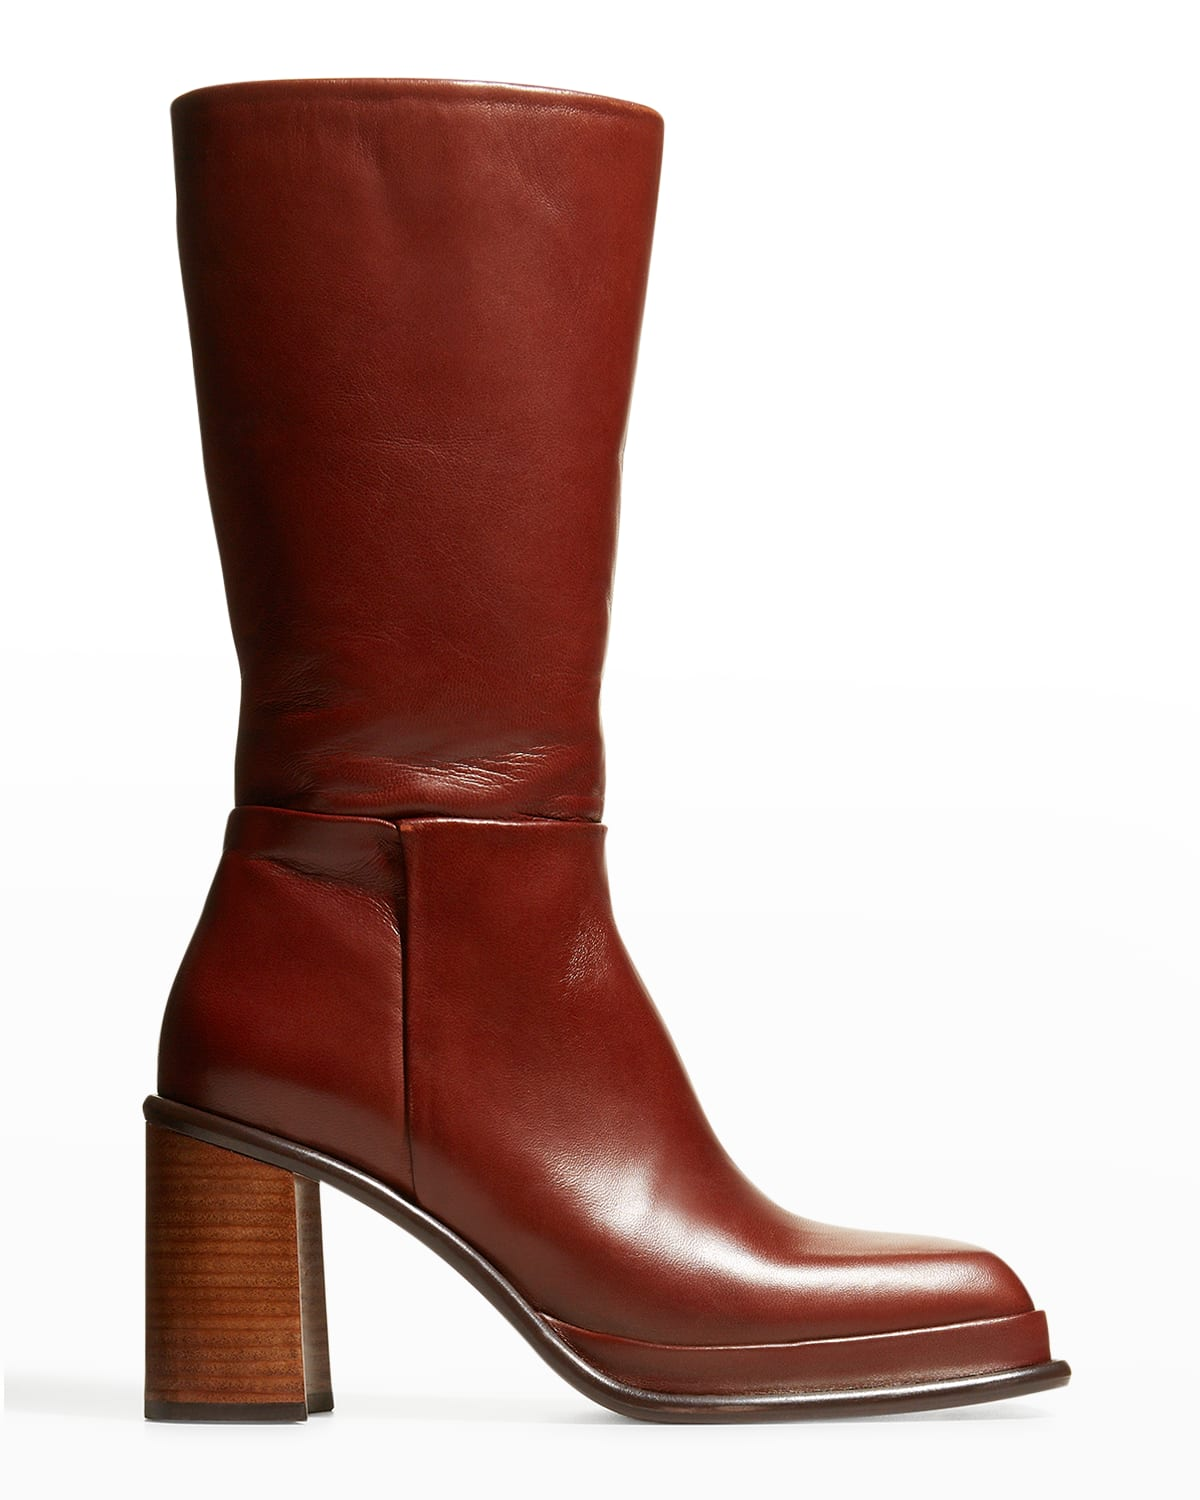 Abril Leather Square-Toe Mid Boots